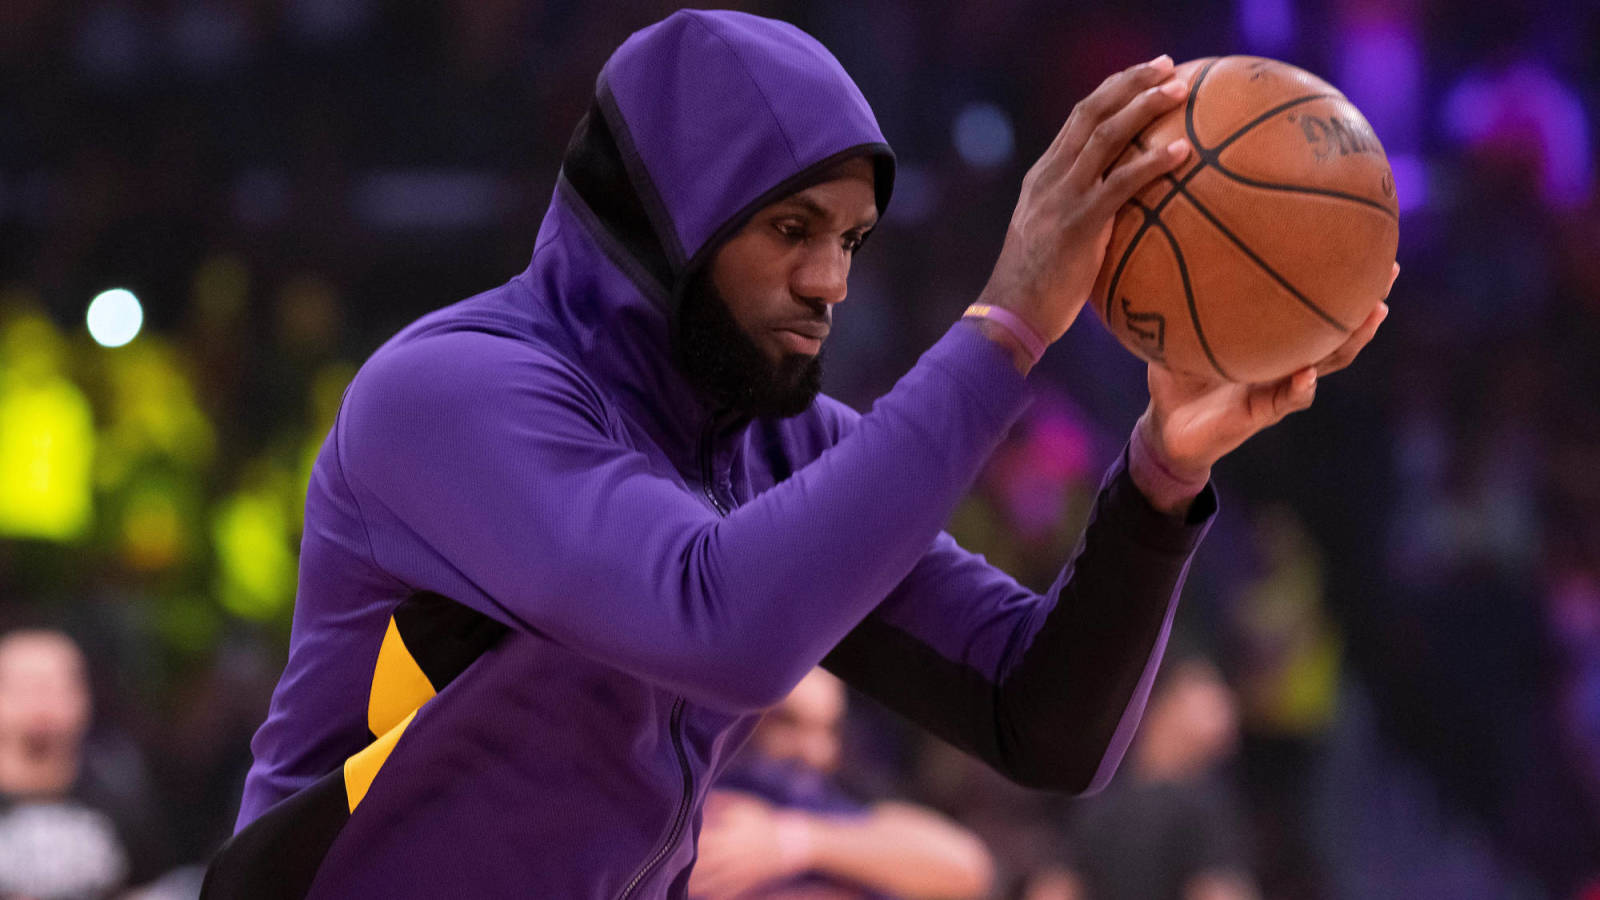 Lakers face 'balancing act' with LeBron James amid quick turnaround?